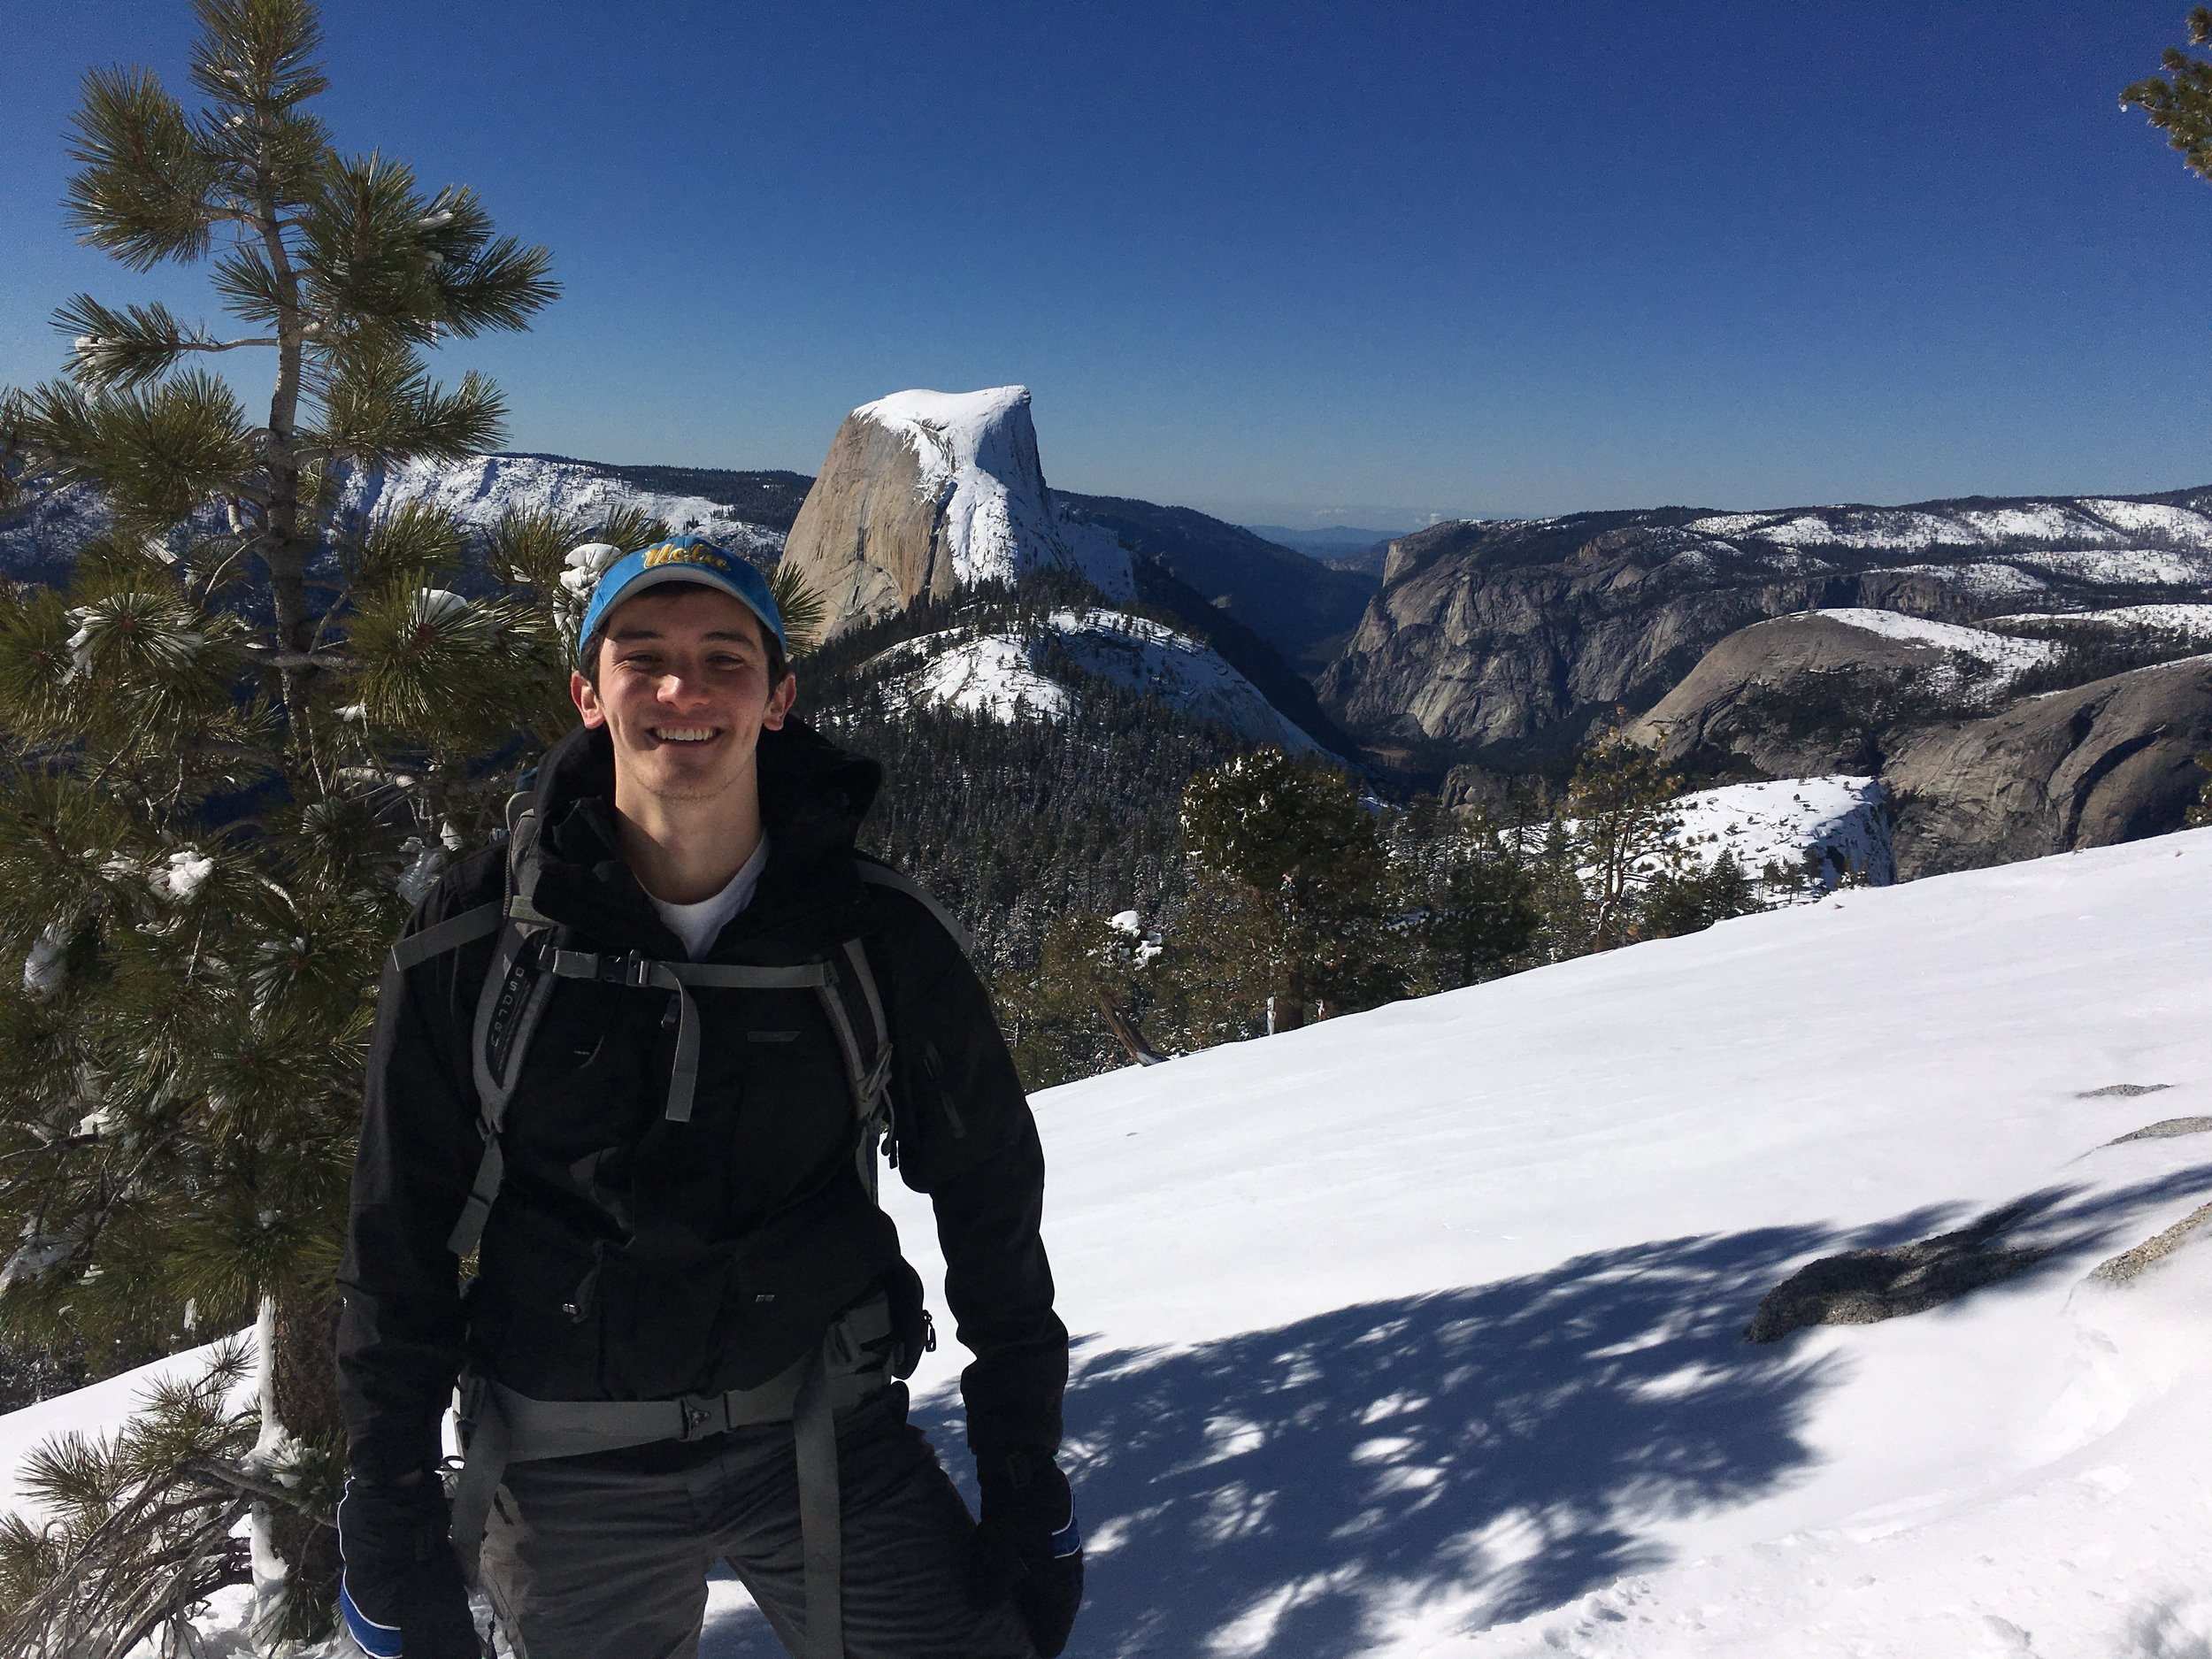 grad student - Colin Shew joined in April as part of the IGG grad group having graduated from UCLA. With a general interest in evolution and mountaineering, he will focus on human duplications and gene regulation.